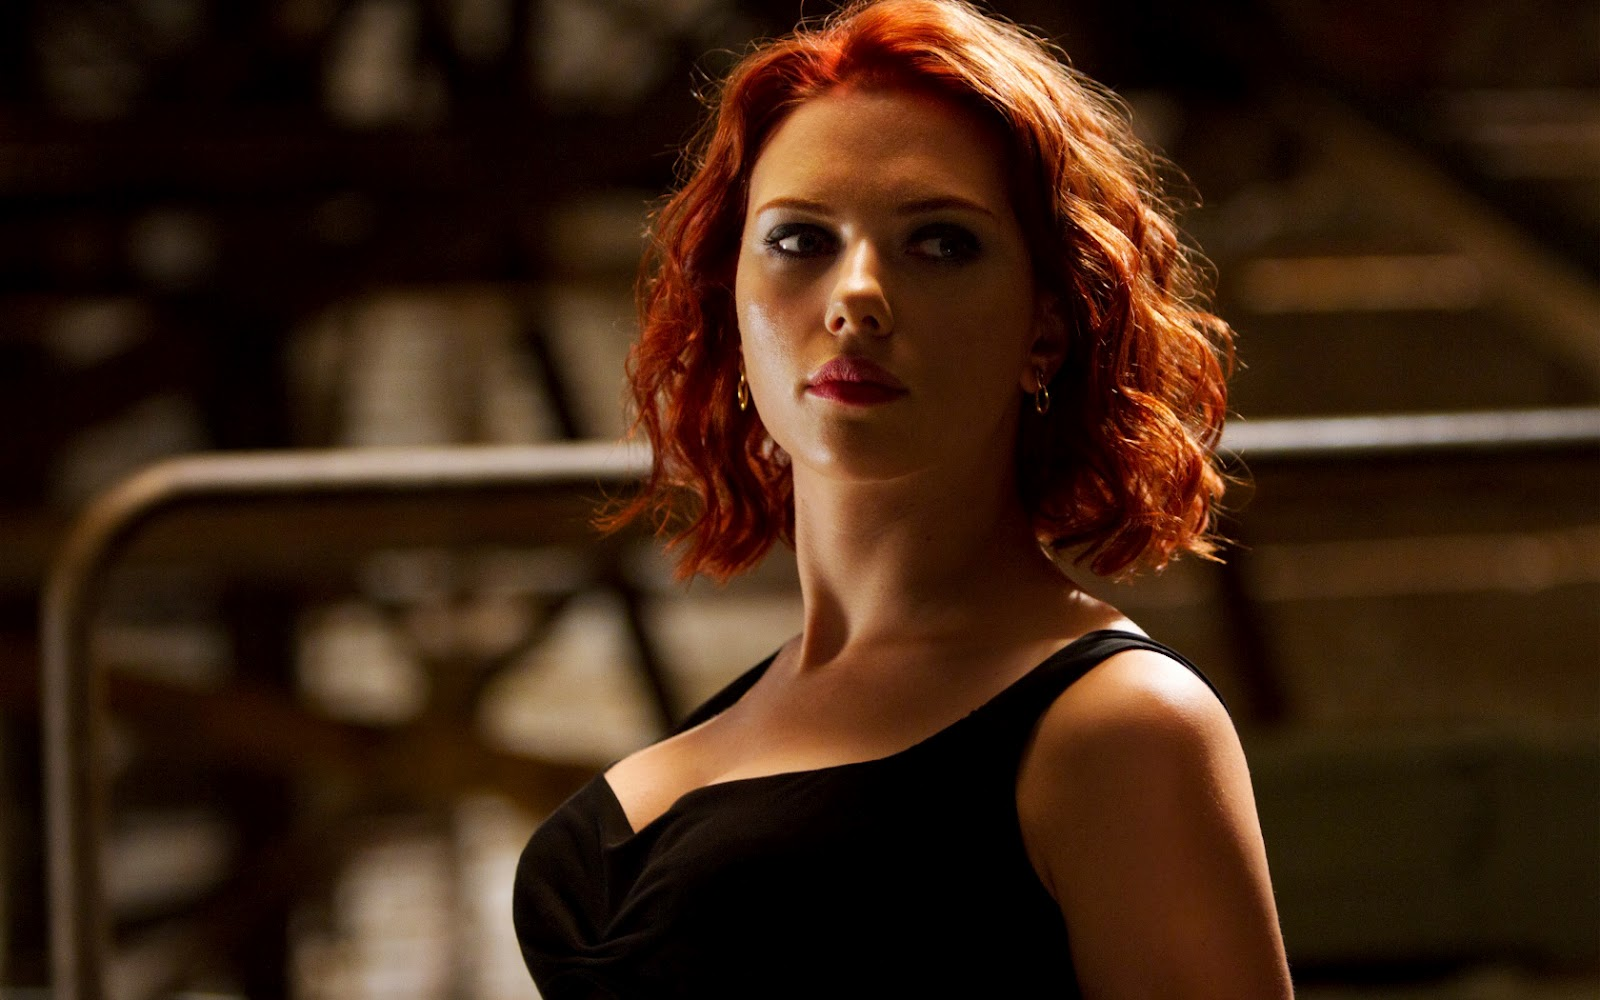 http://3.bp.blogspot.com/-G9wYZqZ2nXc/T6FG1JyfvMI/AAAAAAAABg8/ABYfo5M4f7U/s1600/Black_Widow_Scarlett_Johannsson_Avengers_Movie_HD_Wallpaper-Vvallpaper.Net.jpg